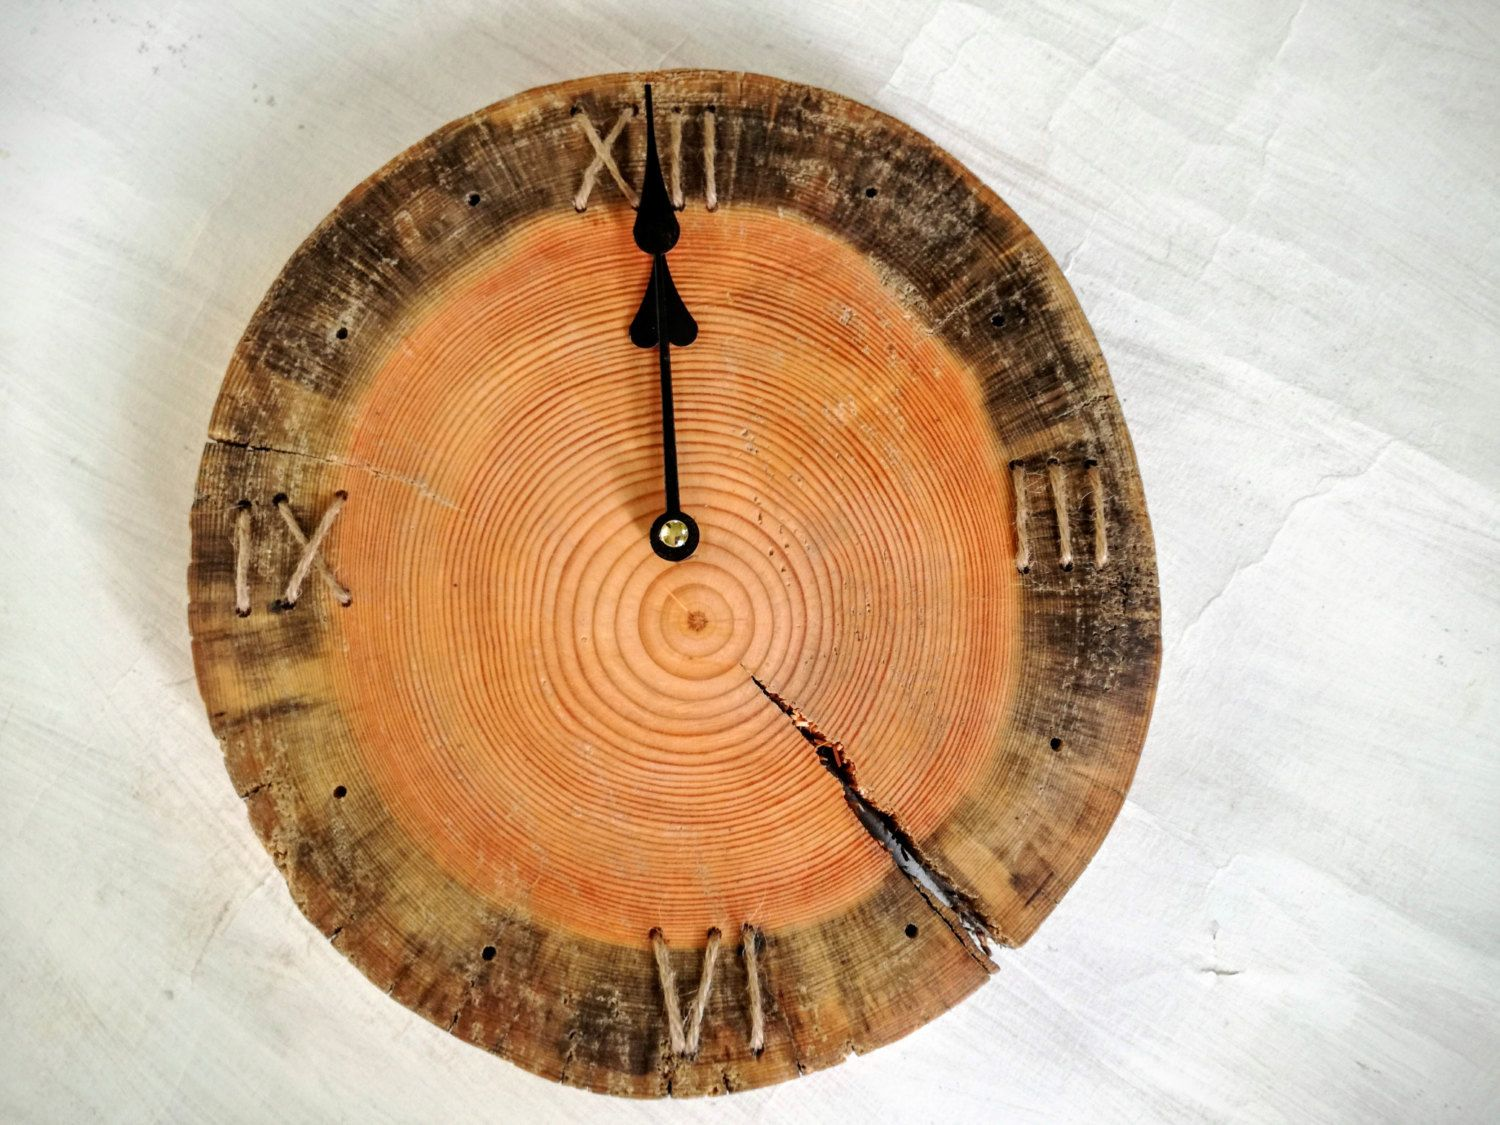 Wall clock in natural wood modern rustic clock barn wood wall wall clock in natural wood modern rustic clock barn wood wall clock wood slice amipublicfo Image collections